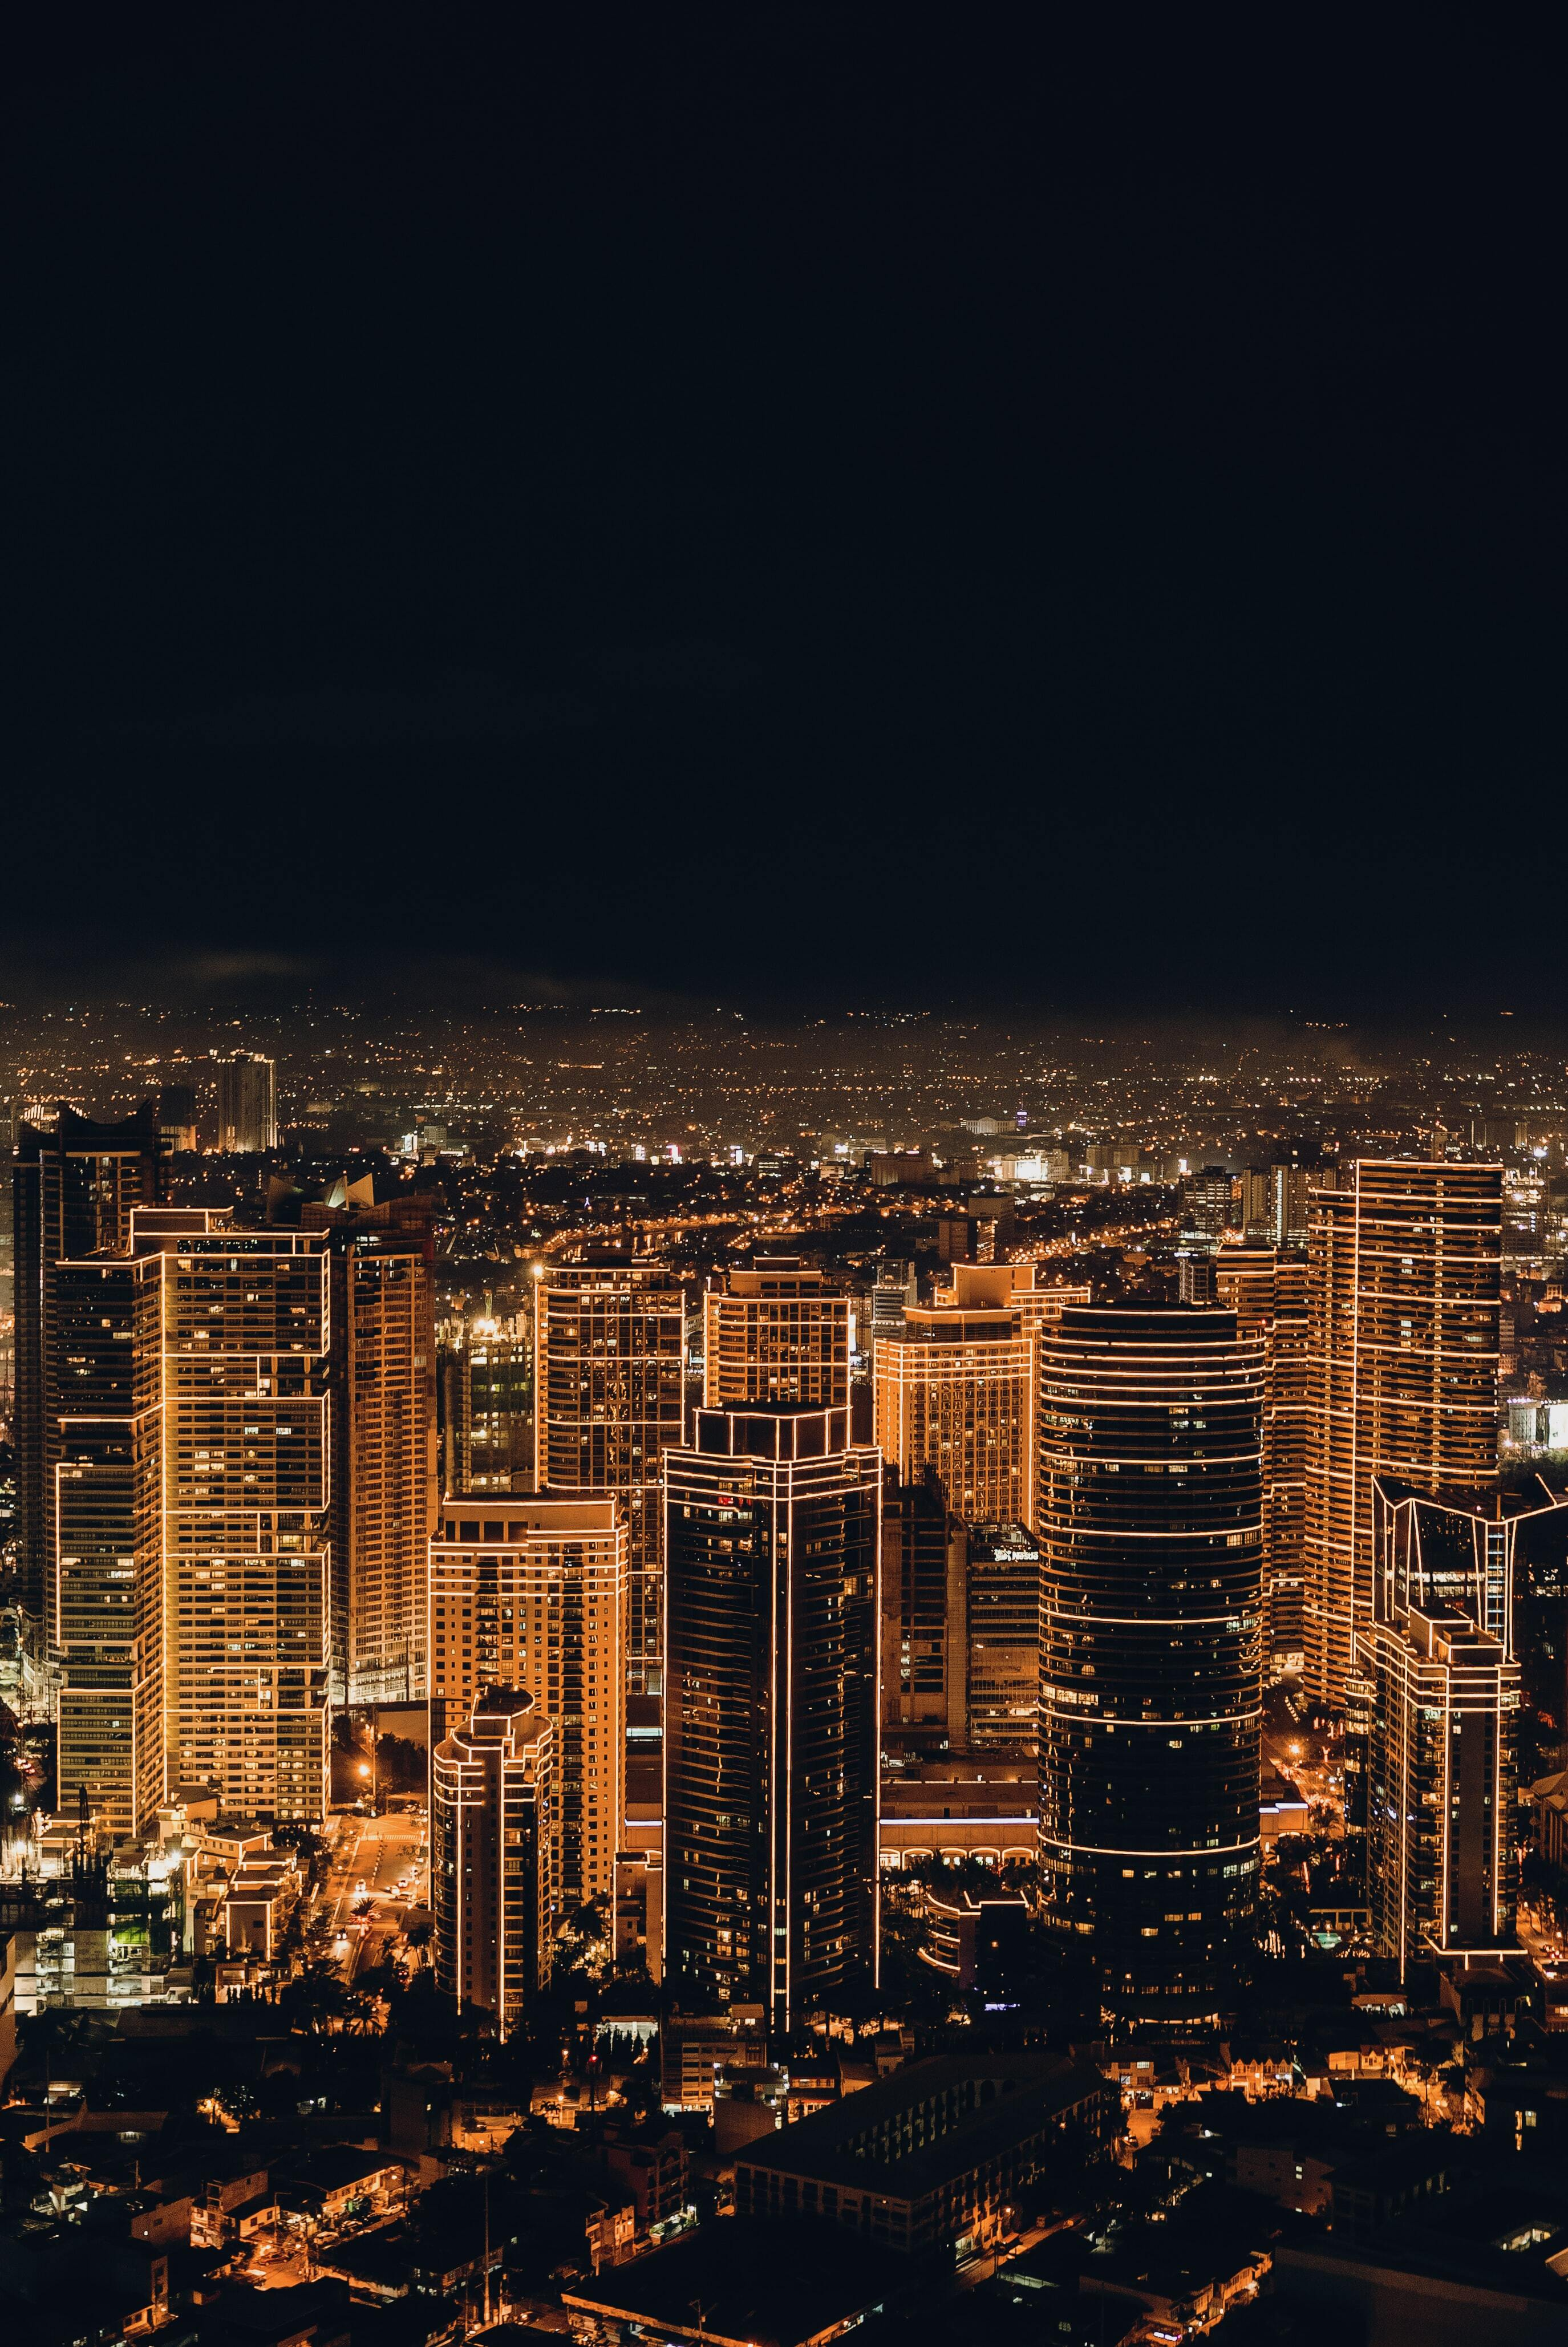 Photograph of a city skyline at night illuminated by skyscrapers and road network